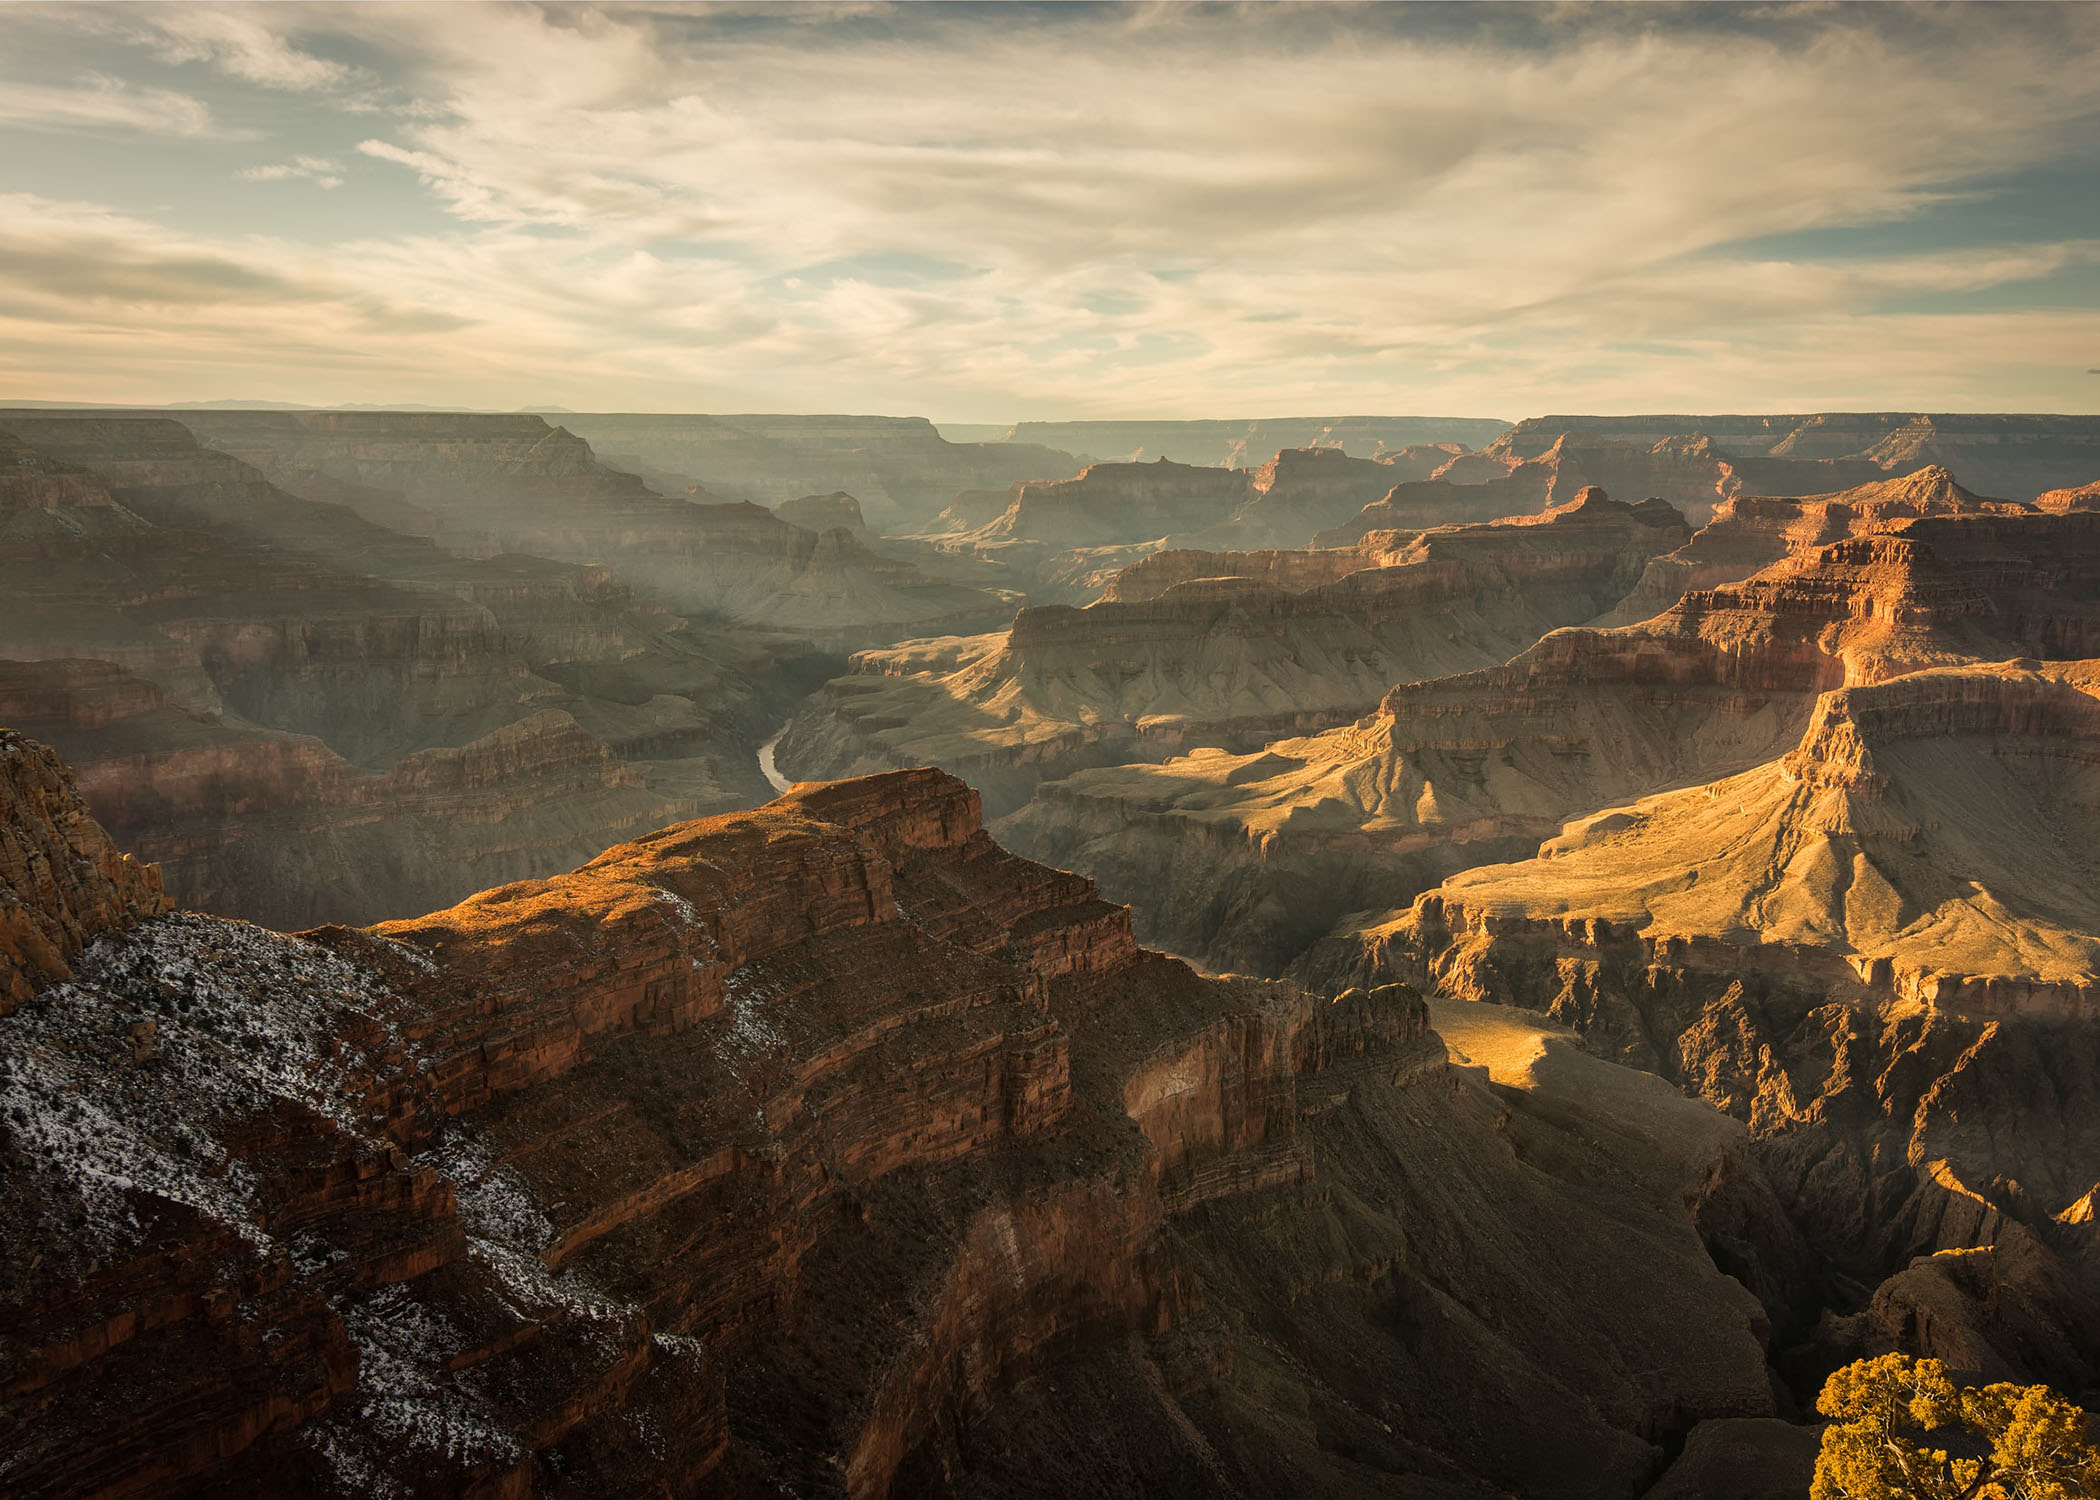 Scenic overlook in Grand Canyon National Park